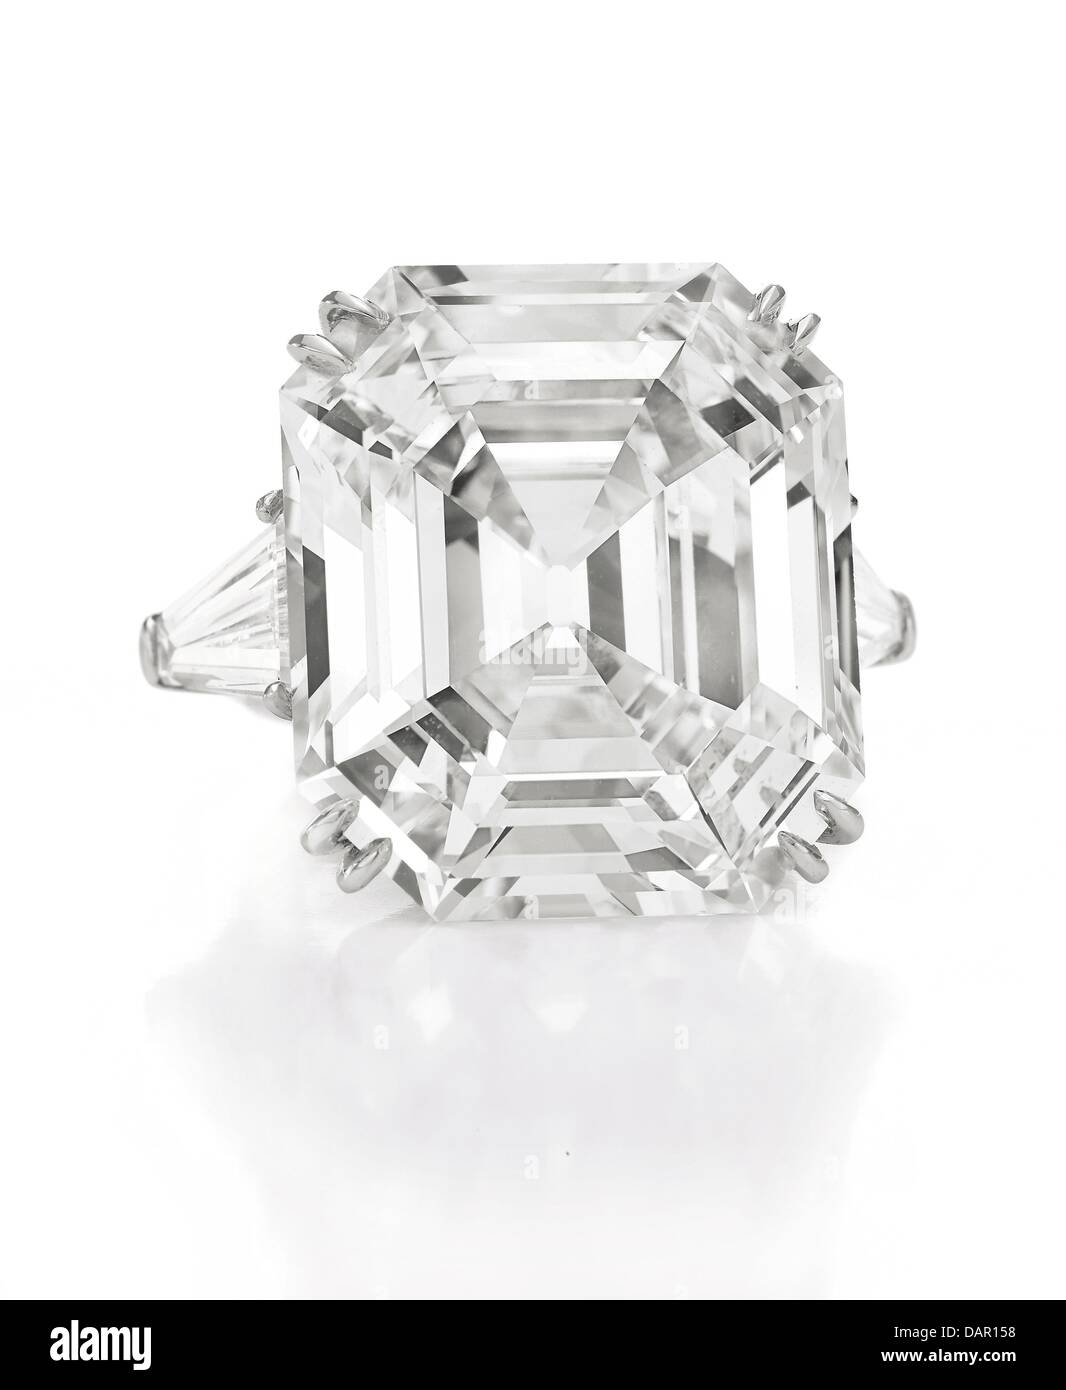 Undated handout shows 'The Elizabeth Taylor Diamond', a diamond ring of 33.19 carats, a fift from Richard - Stock Image